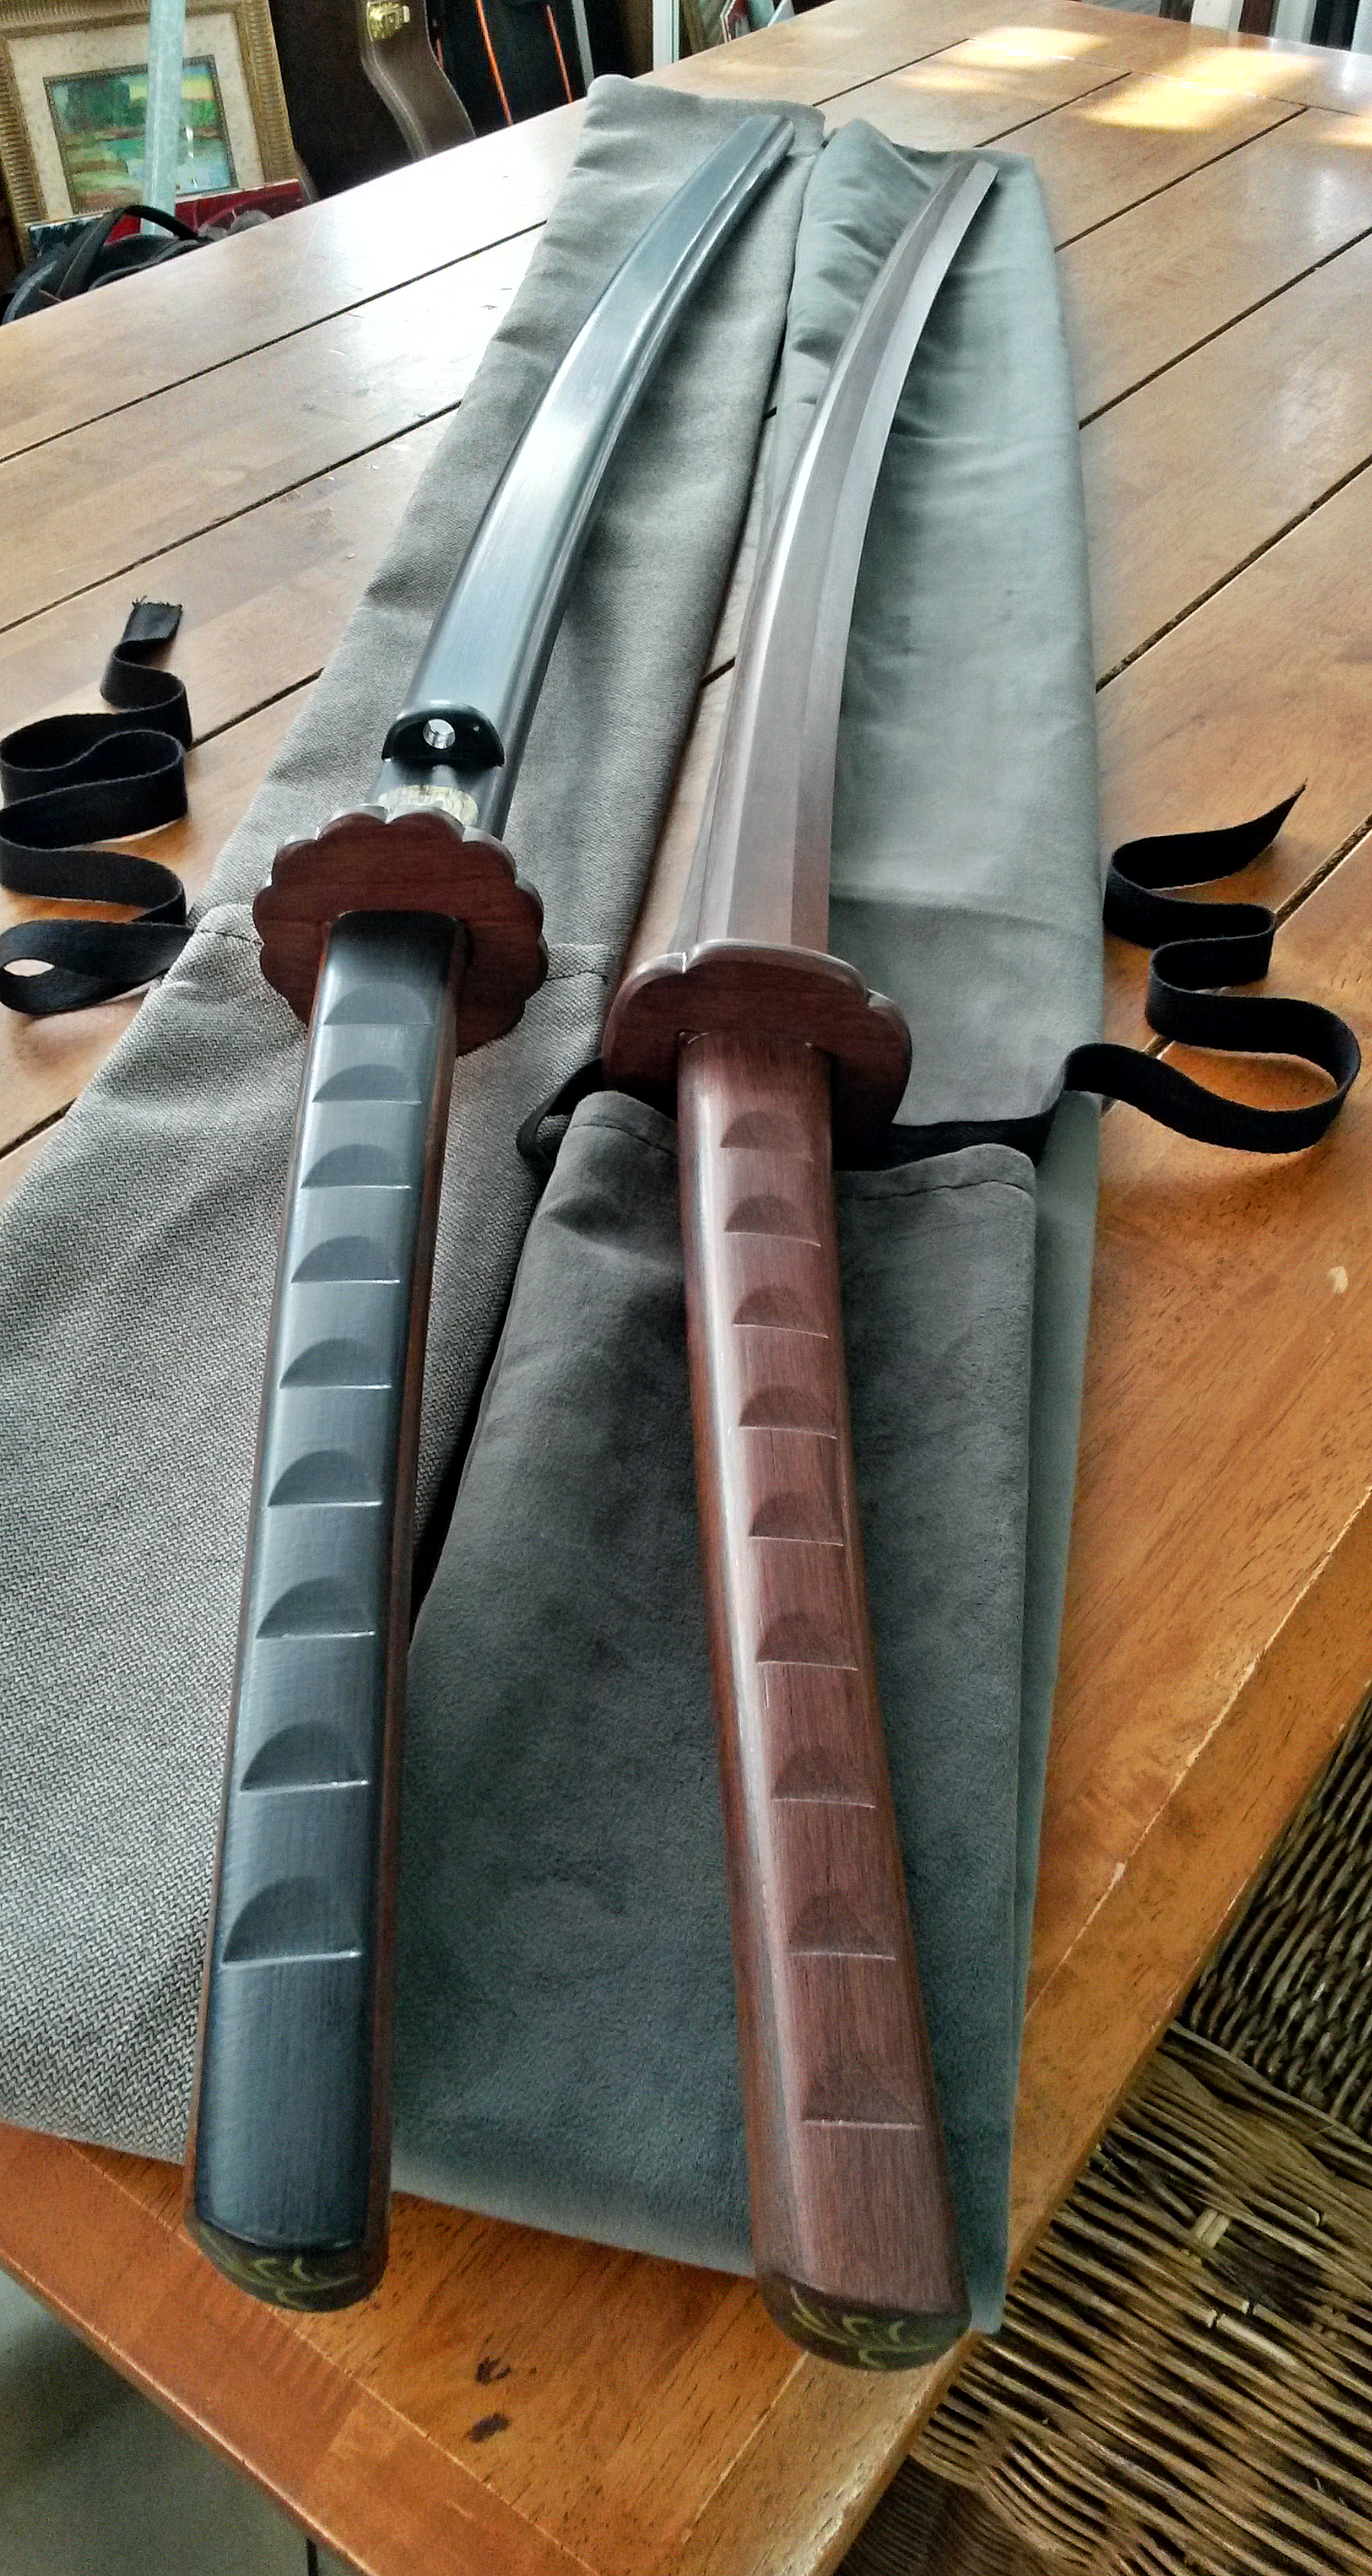 Two different styles of training bokken: an iaido bokken